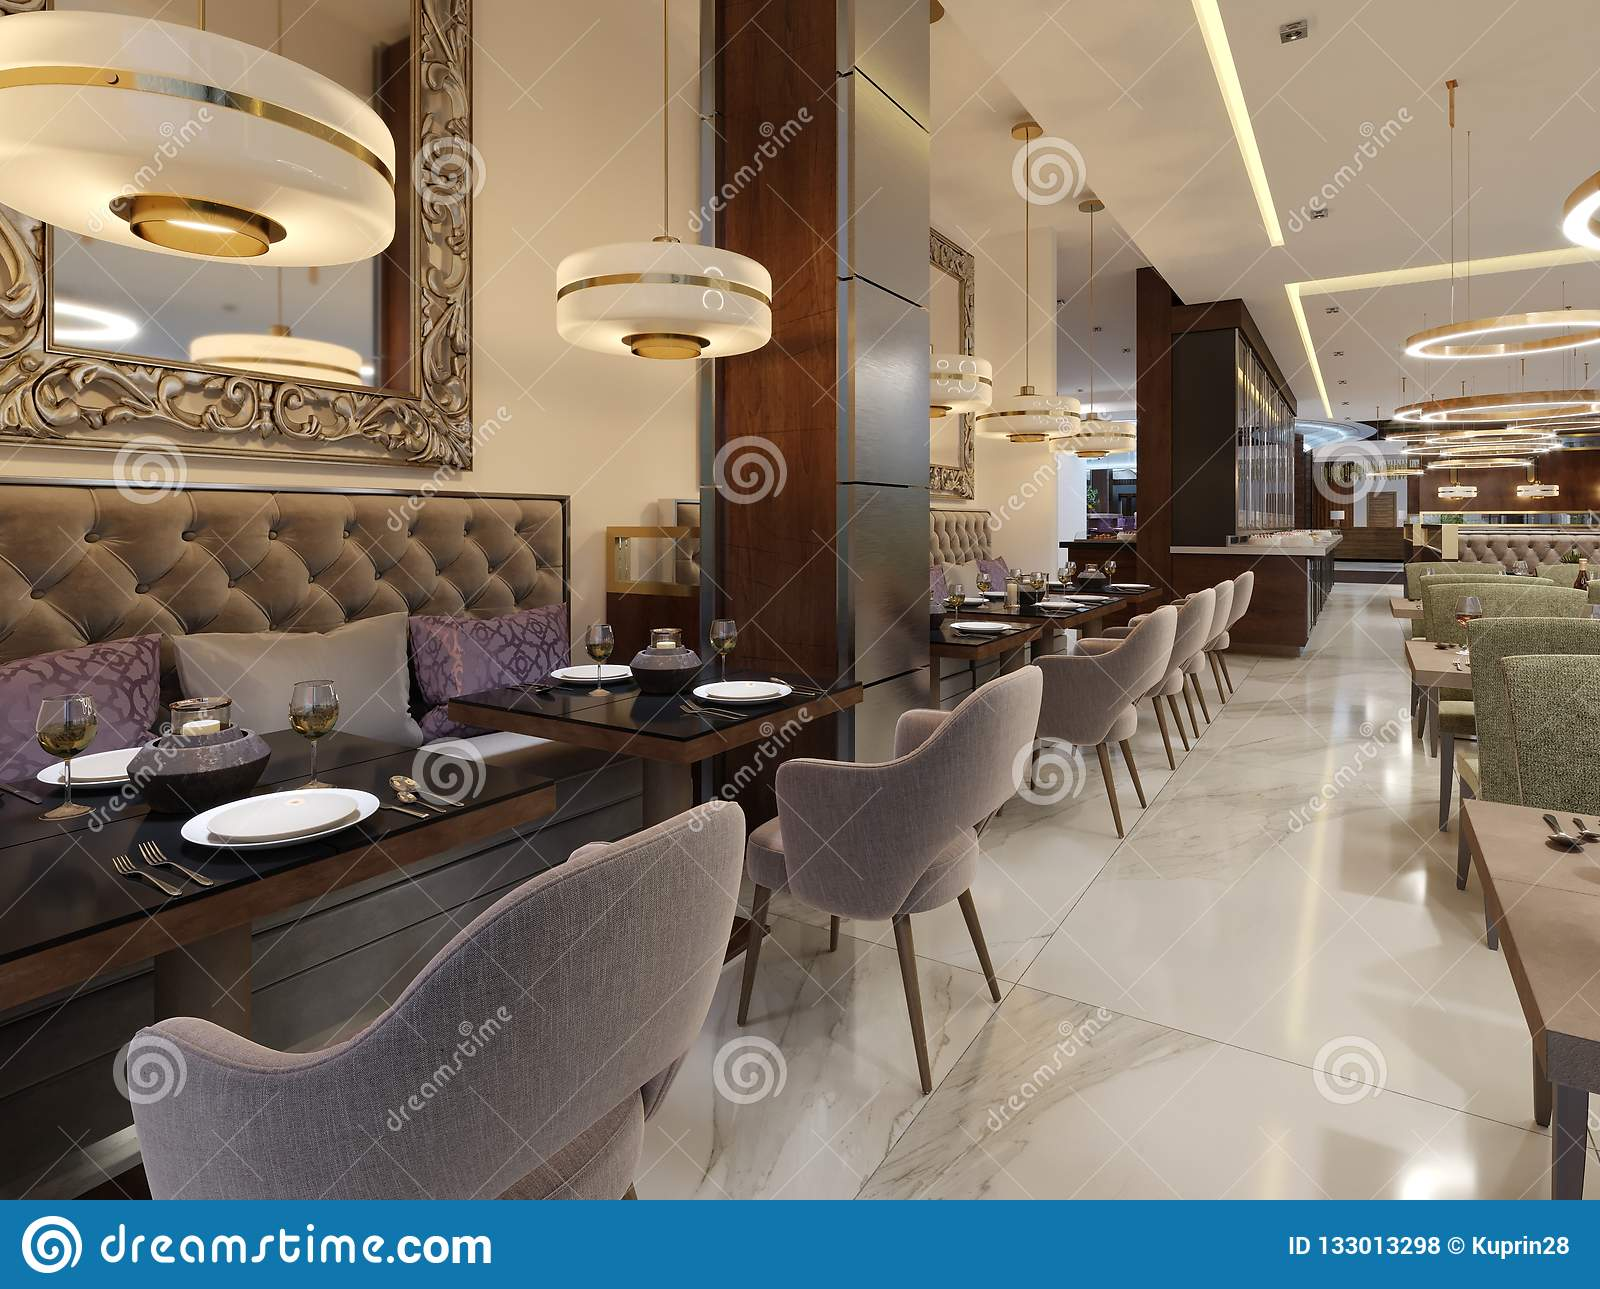 Luxury restaurant in contemporary style with exquisite modern furniture and designer listroy with hidden lighting brand interior design of the restaurant